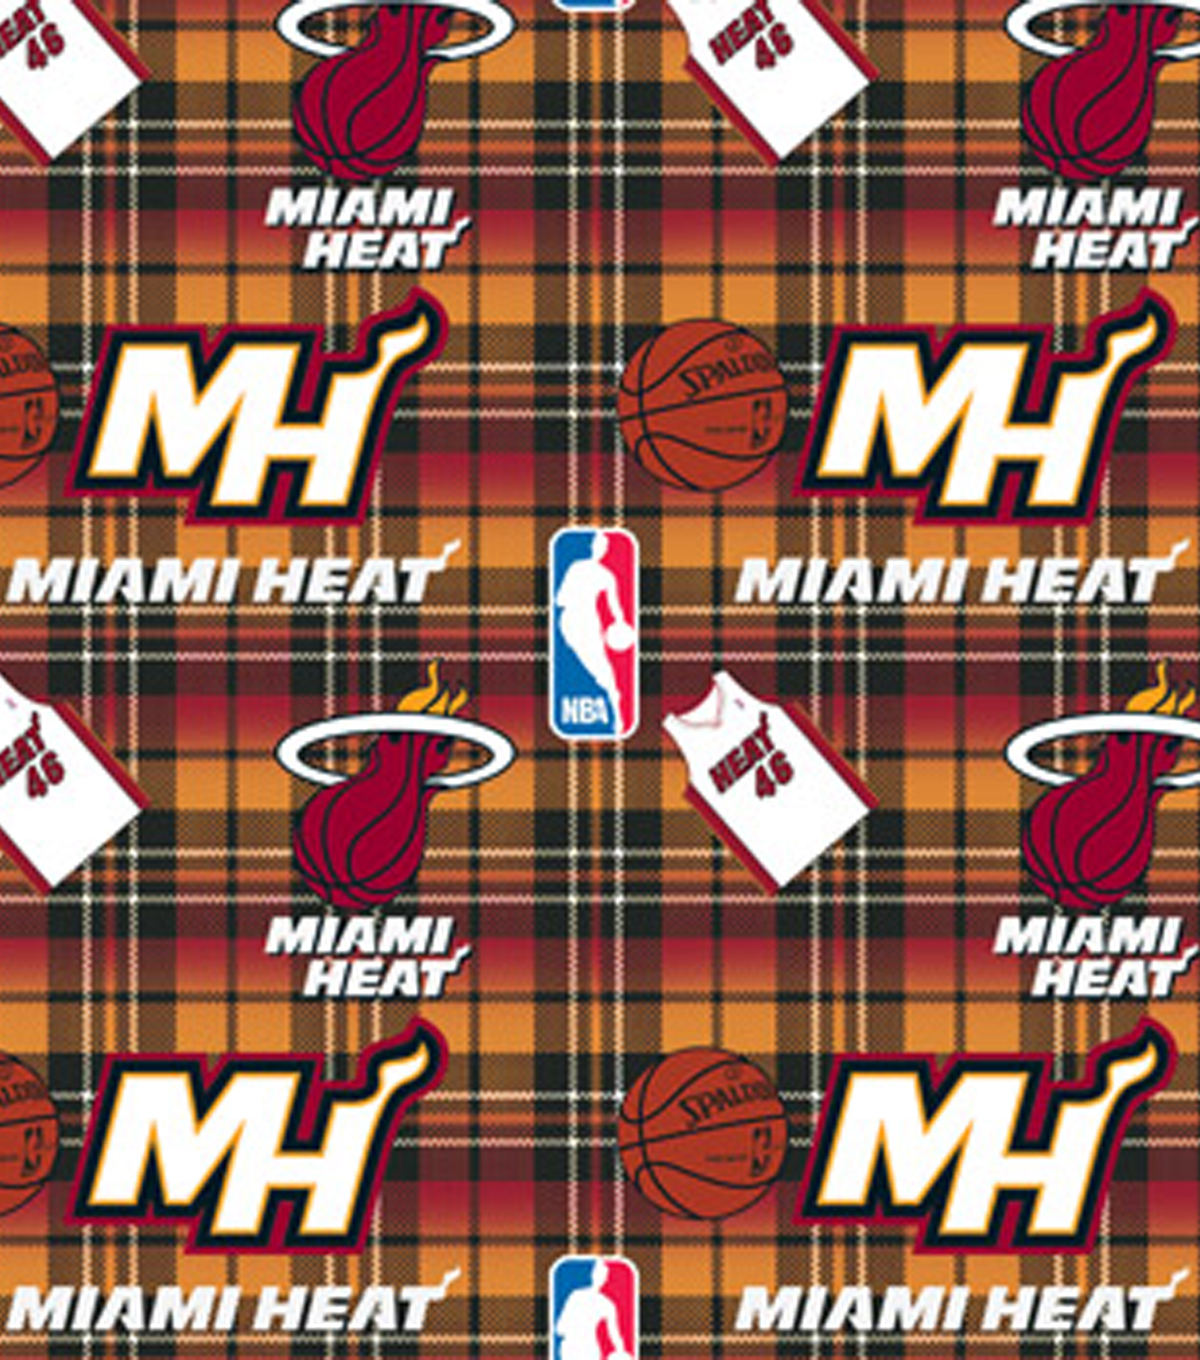 Miami Heat Fleece Fabric -Plaid